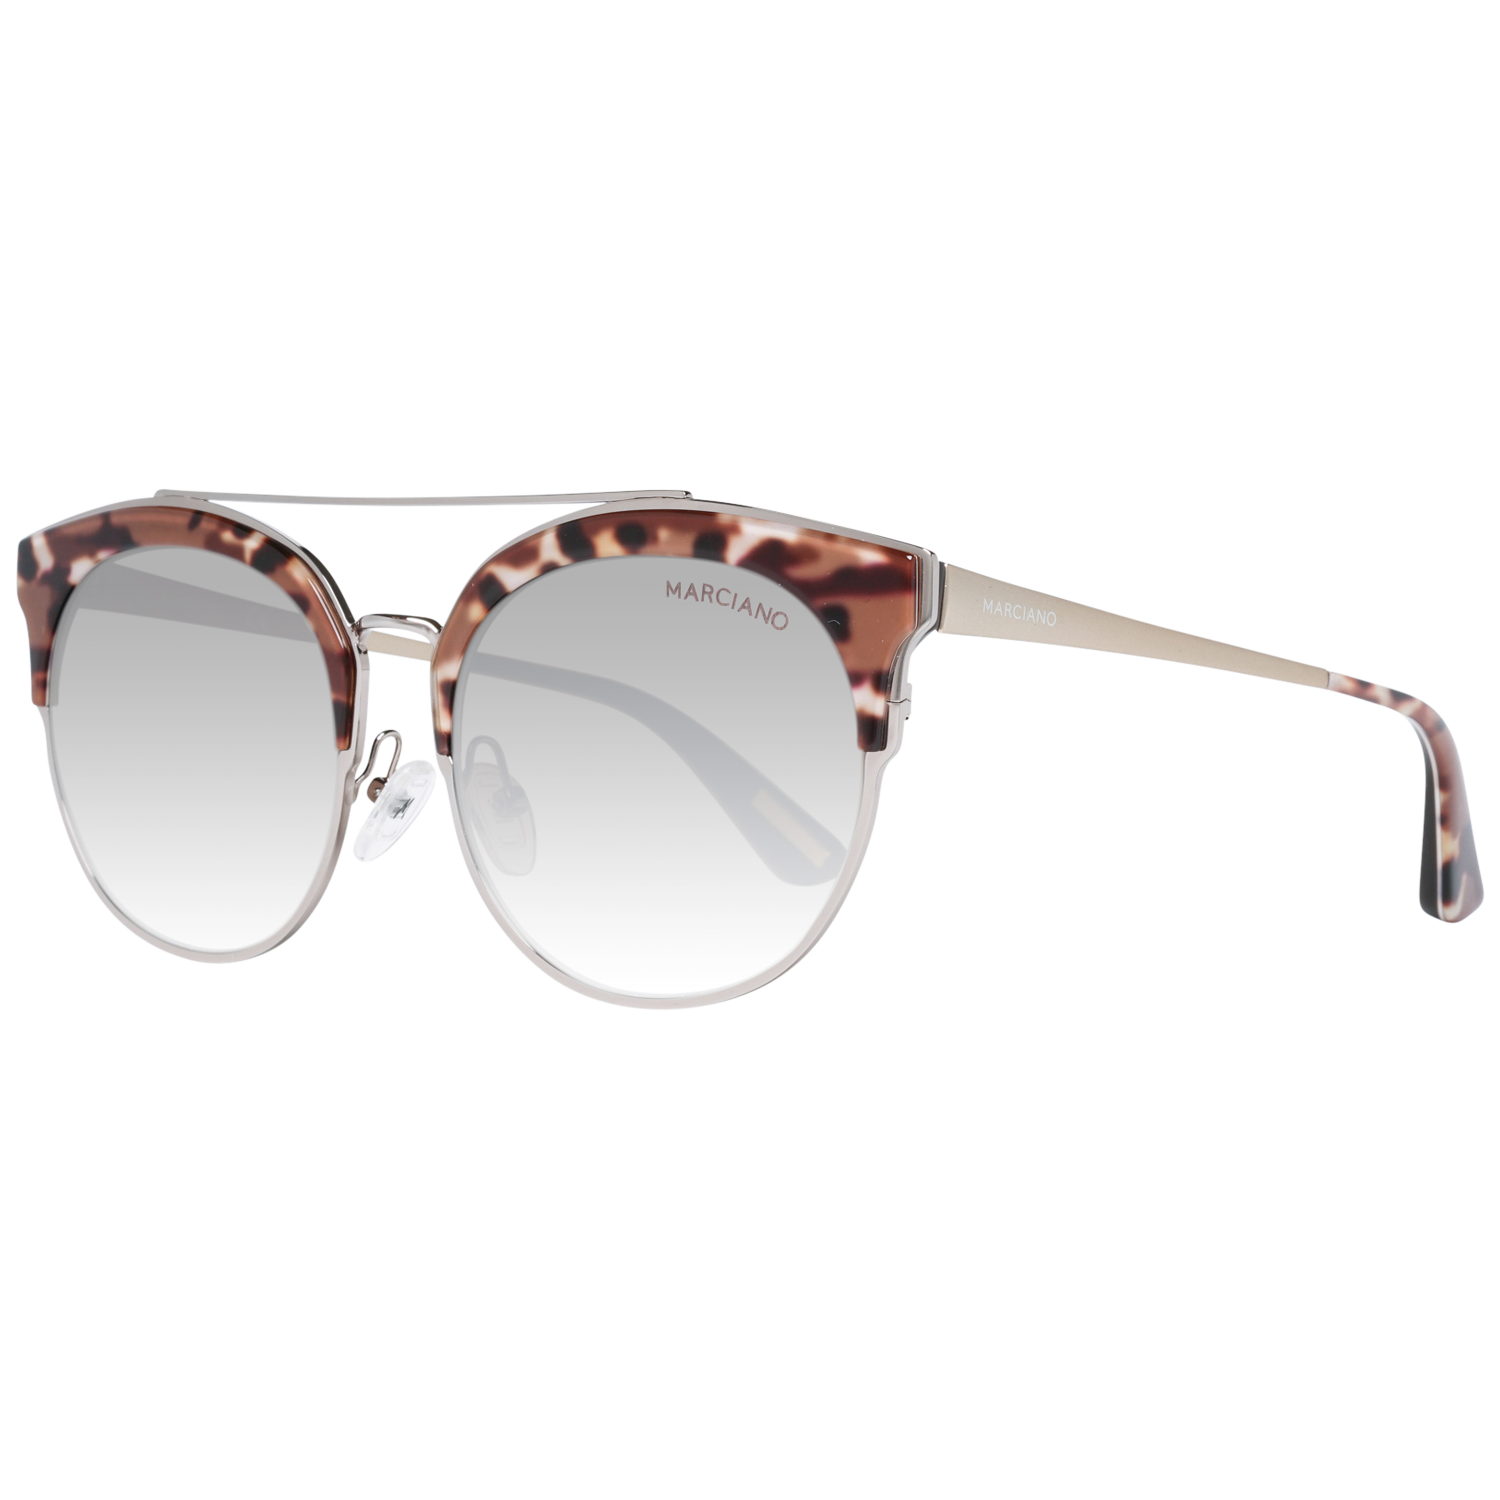 Guess by Marciano Sunglasses GM0764 50G 57 Silver